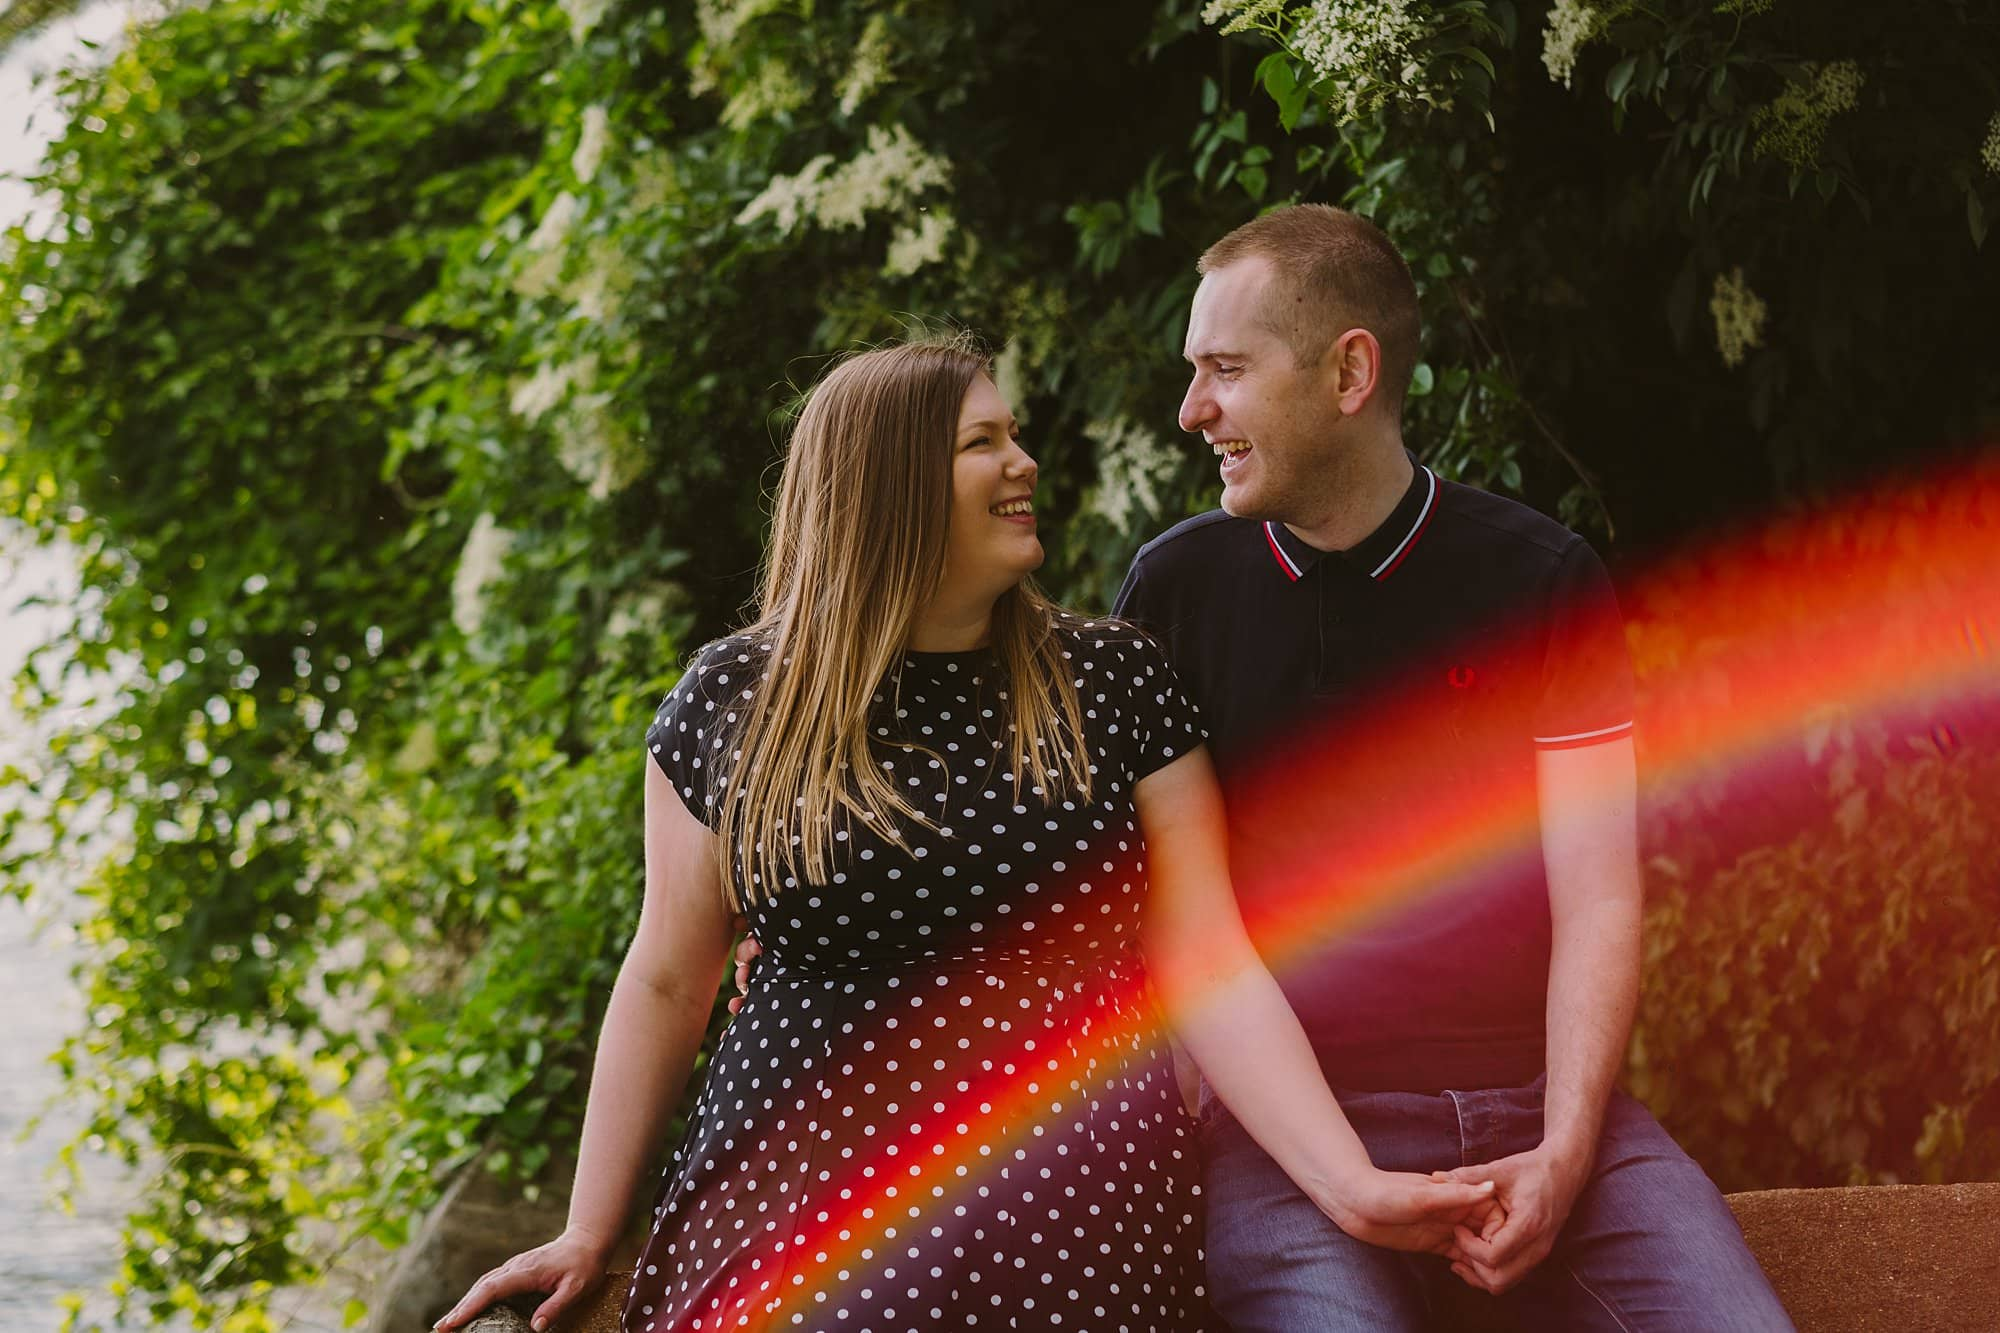 couple sitting together with a rainbow lens flare